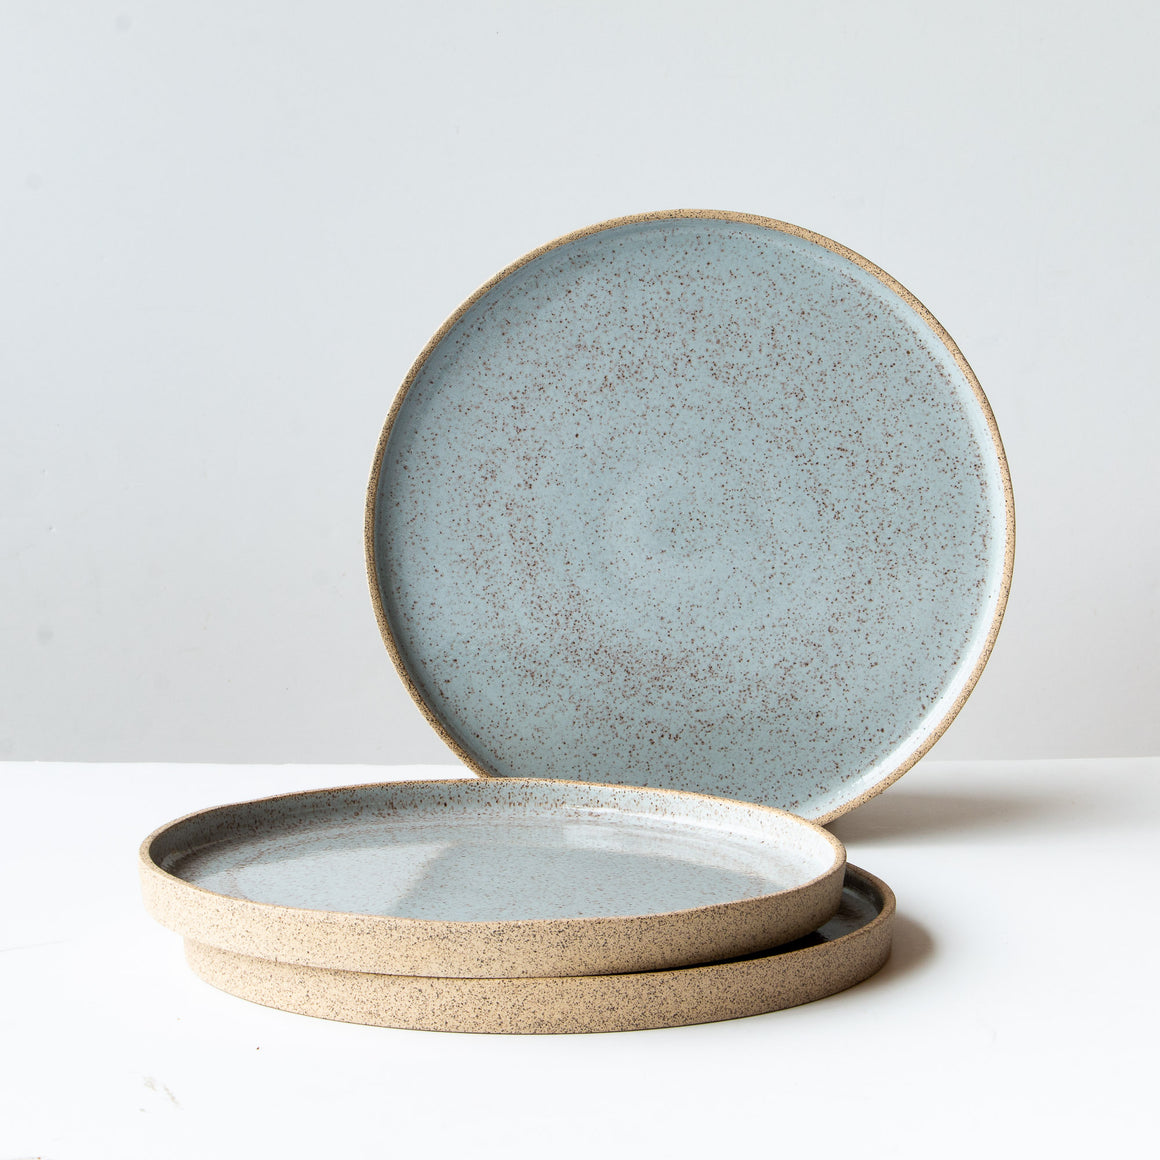 Large Speckled Stoneware Plate - Pale Blue Glaze - Sold by Chic & Basta